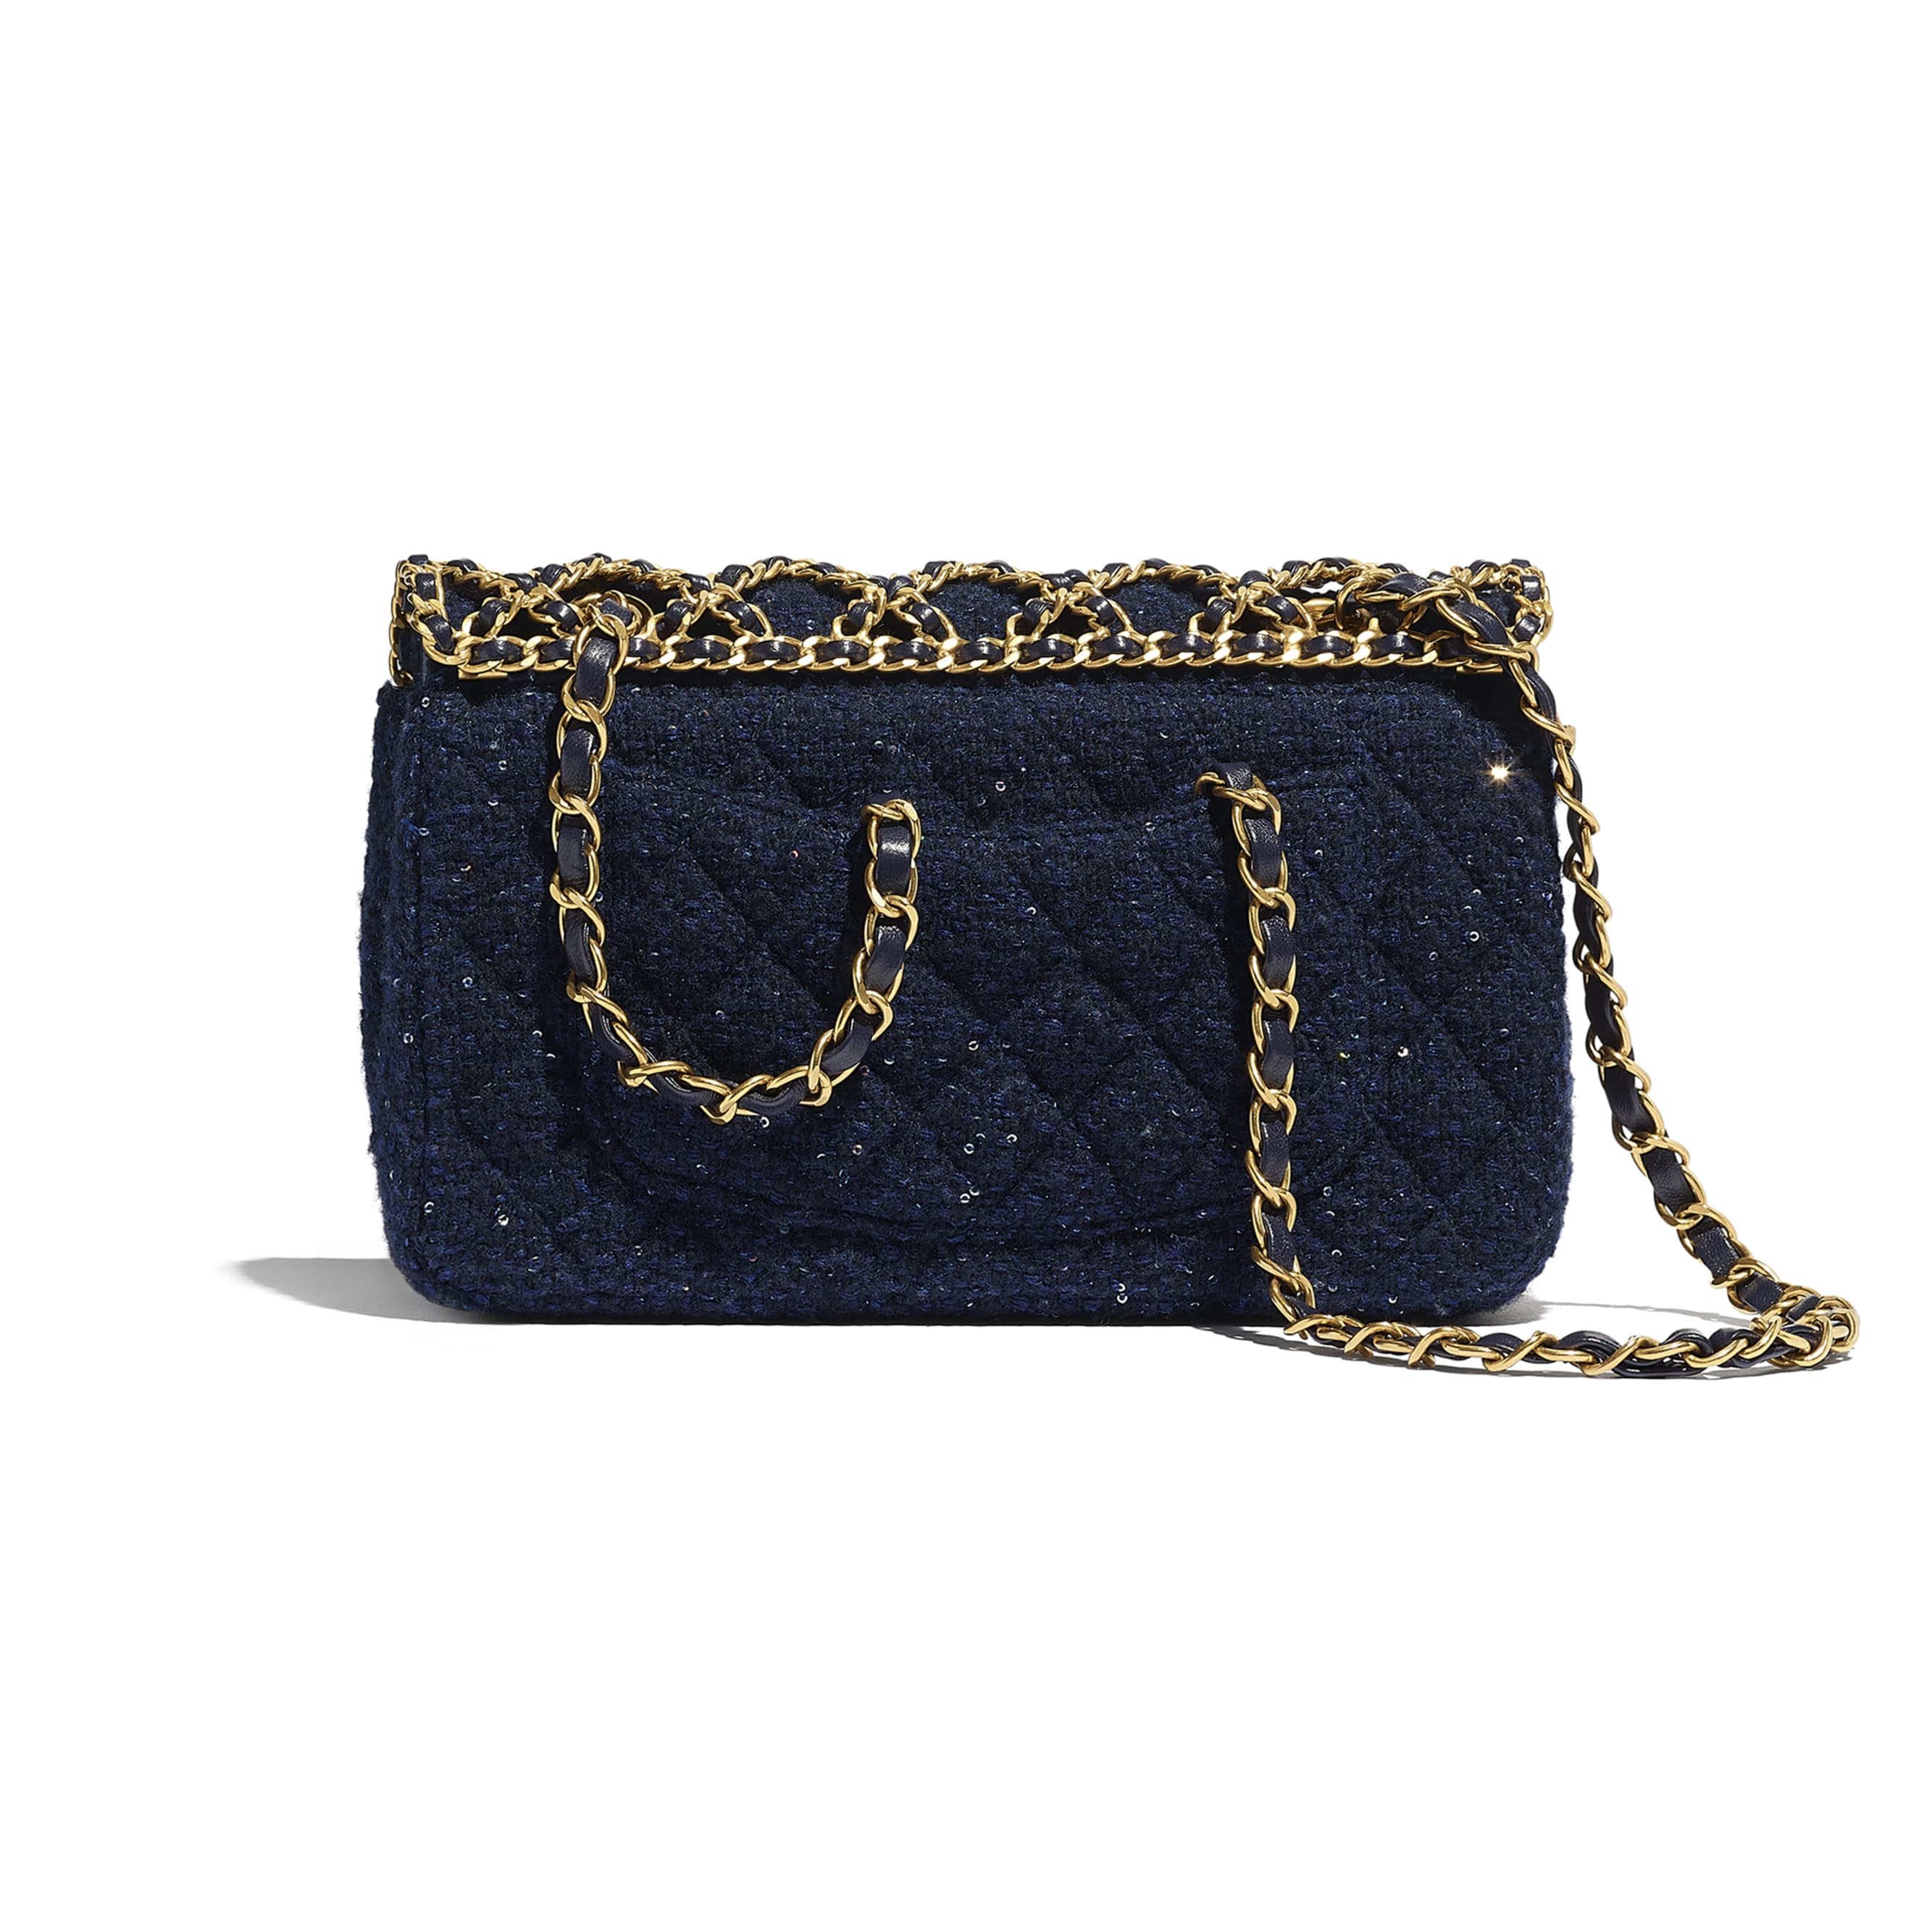 Classic Handbag - Navy Blue - Tweed, Sequins & Gold-Tone Metal - CHANEL - Alternative view - see standard sized version